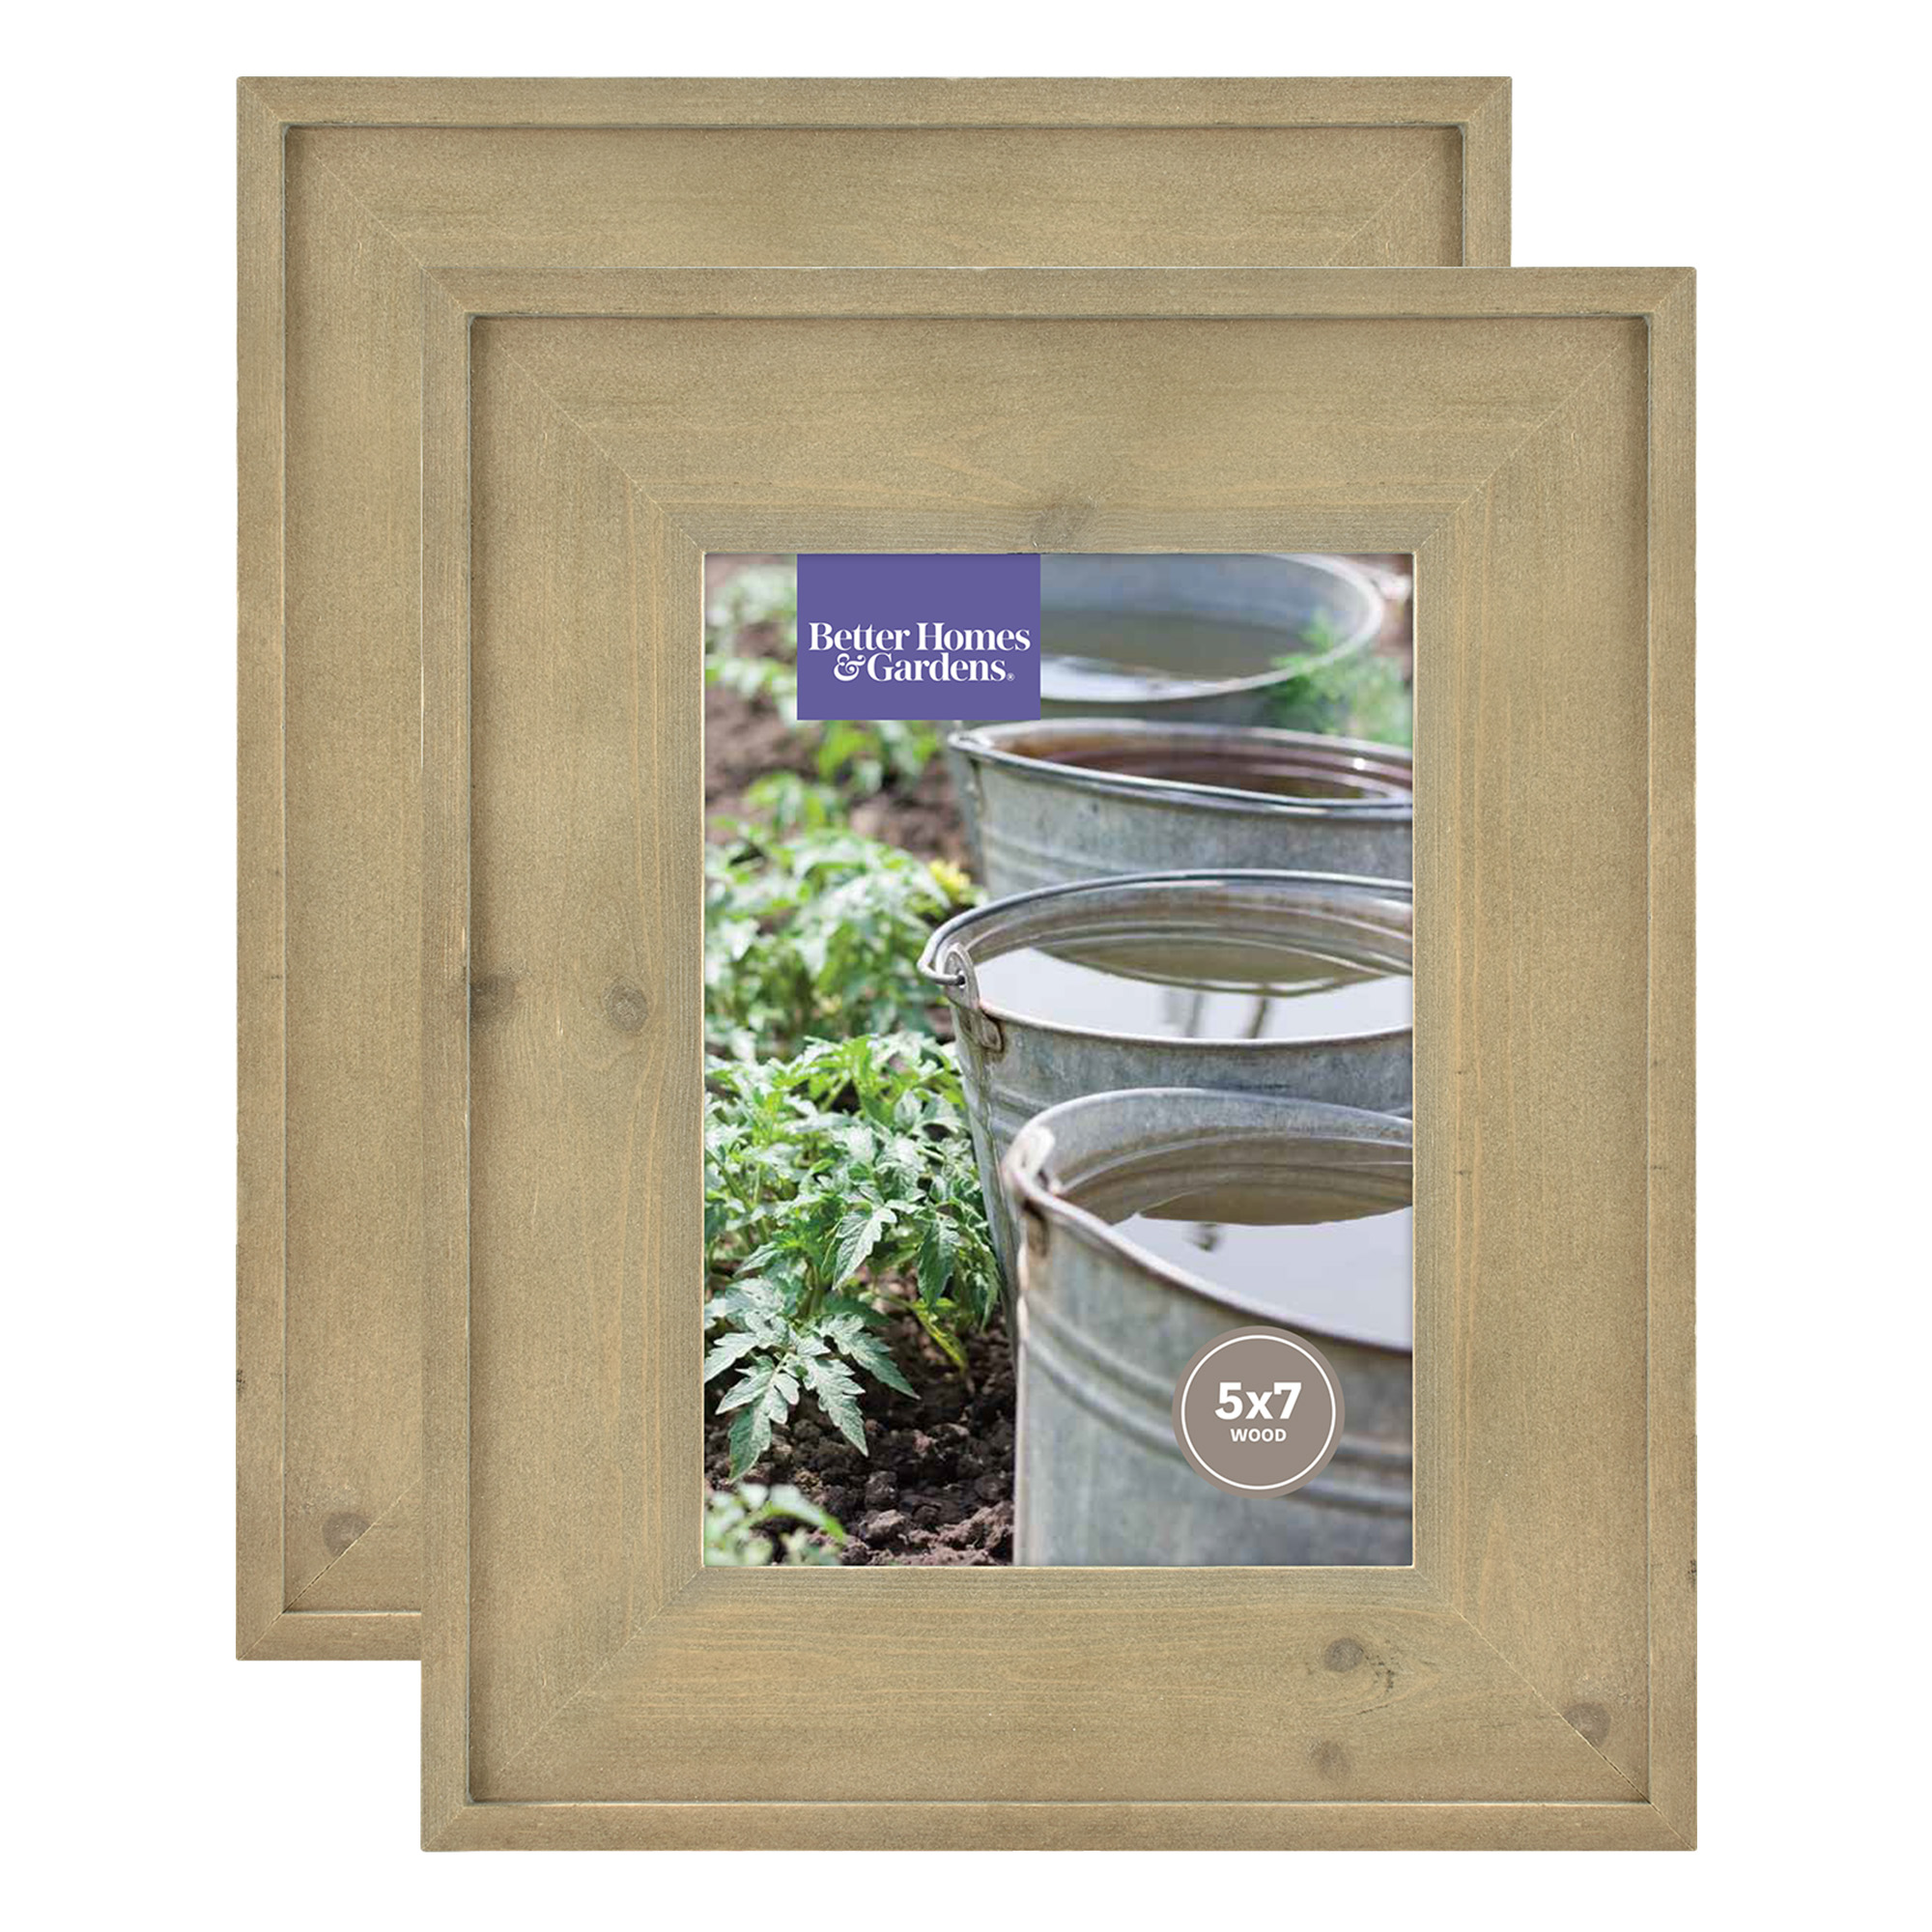 "Better Homes & Gardens 4"" x 6"" Rustic Wood Picture Frame, Pack of 2"